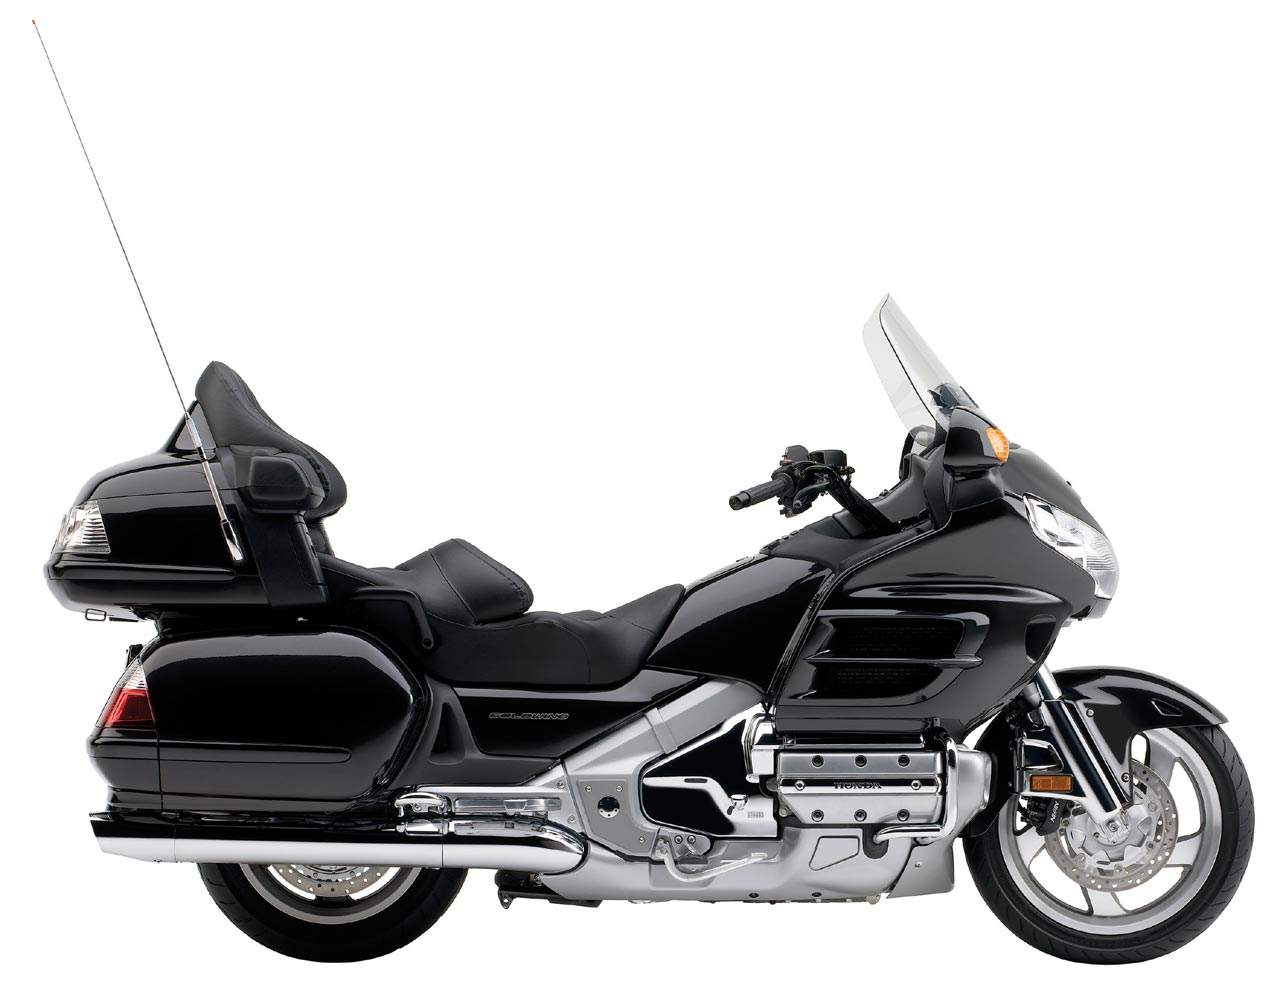 2007 honda gold wing gl1800 rh totalmotorcycle com 2007 Goldwing Trike 2007 honda goldwing service manual